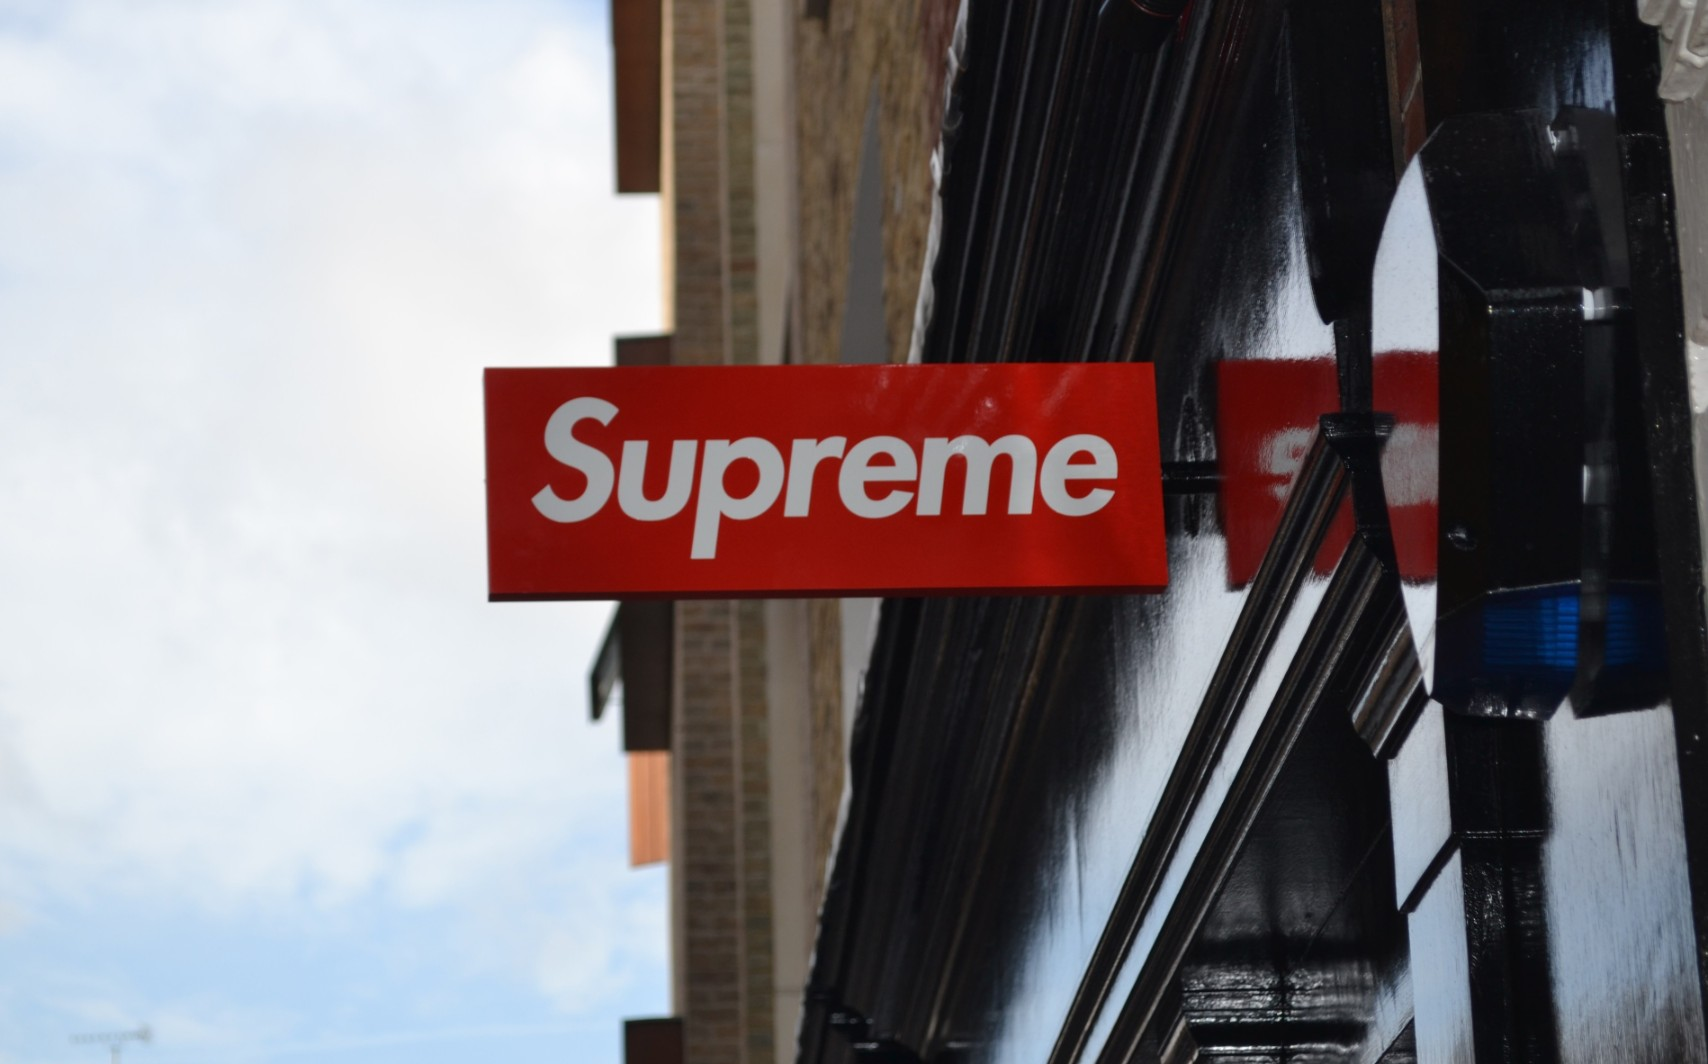 Supreme London Will Gift You a Bogo Crewneck If You Can ID the Man Who Defaced Their Store